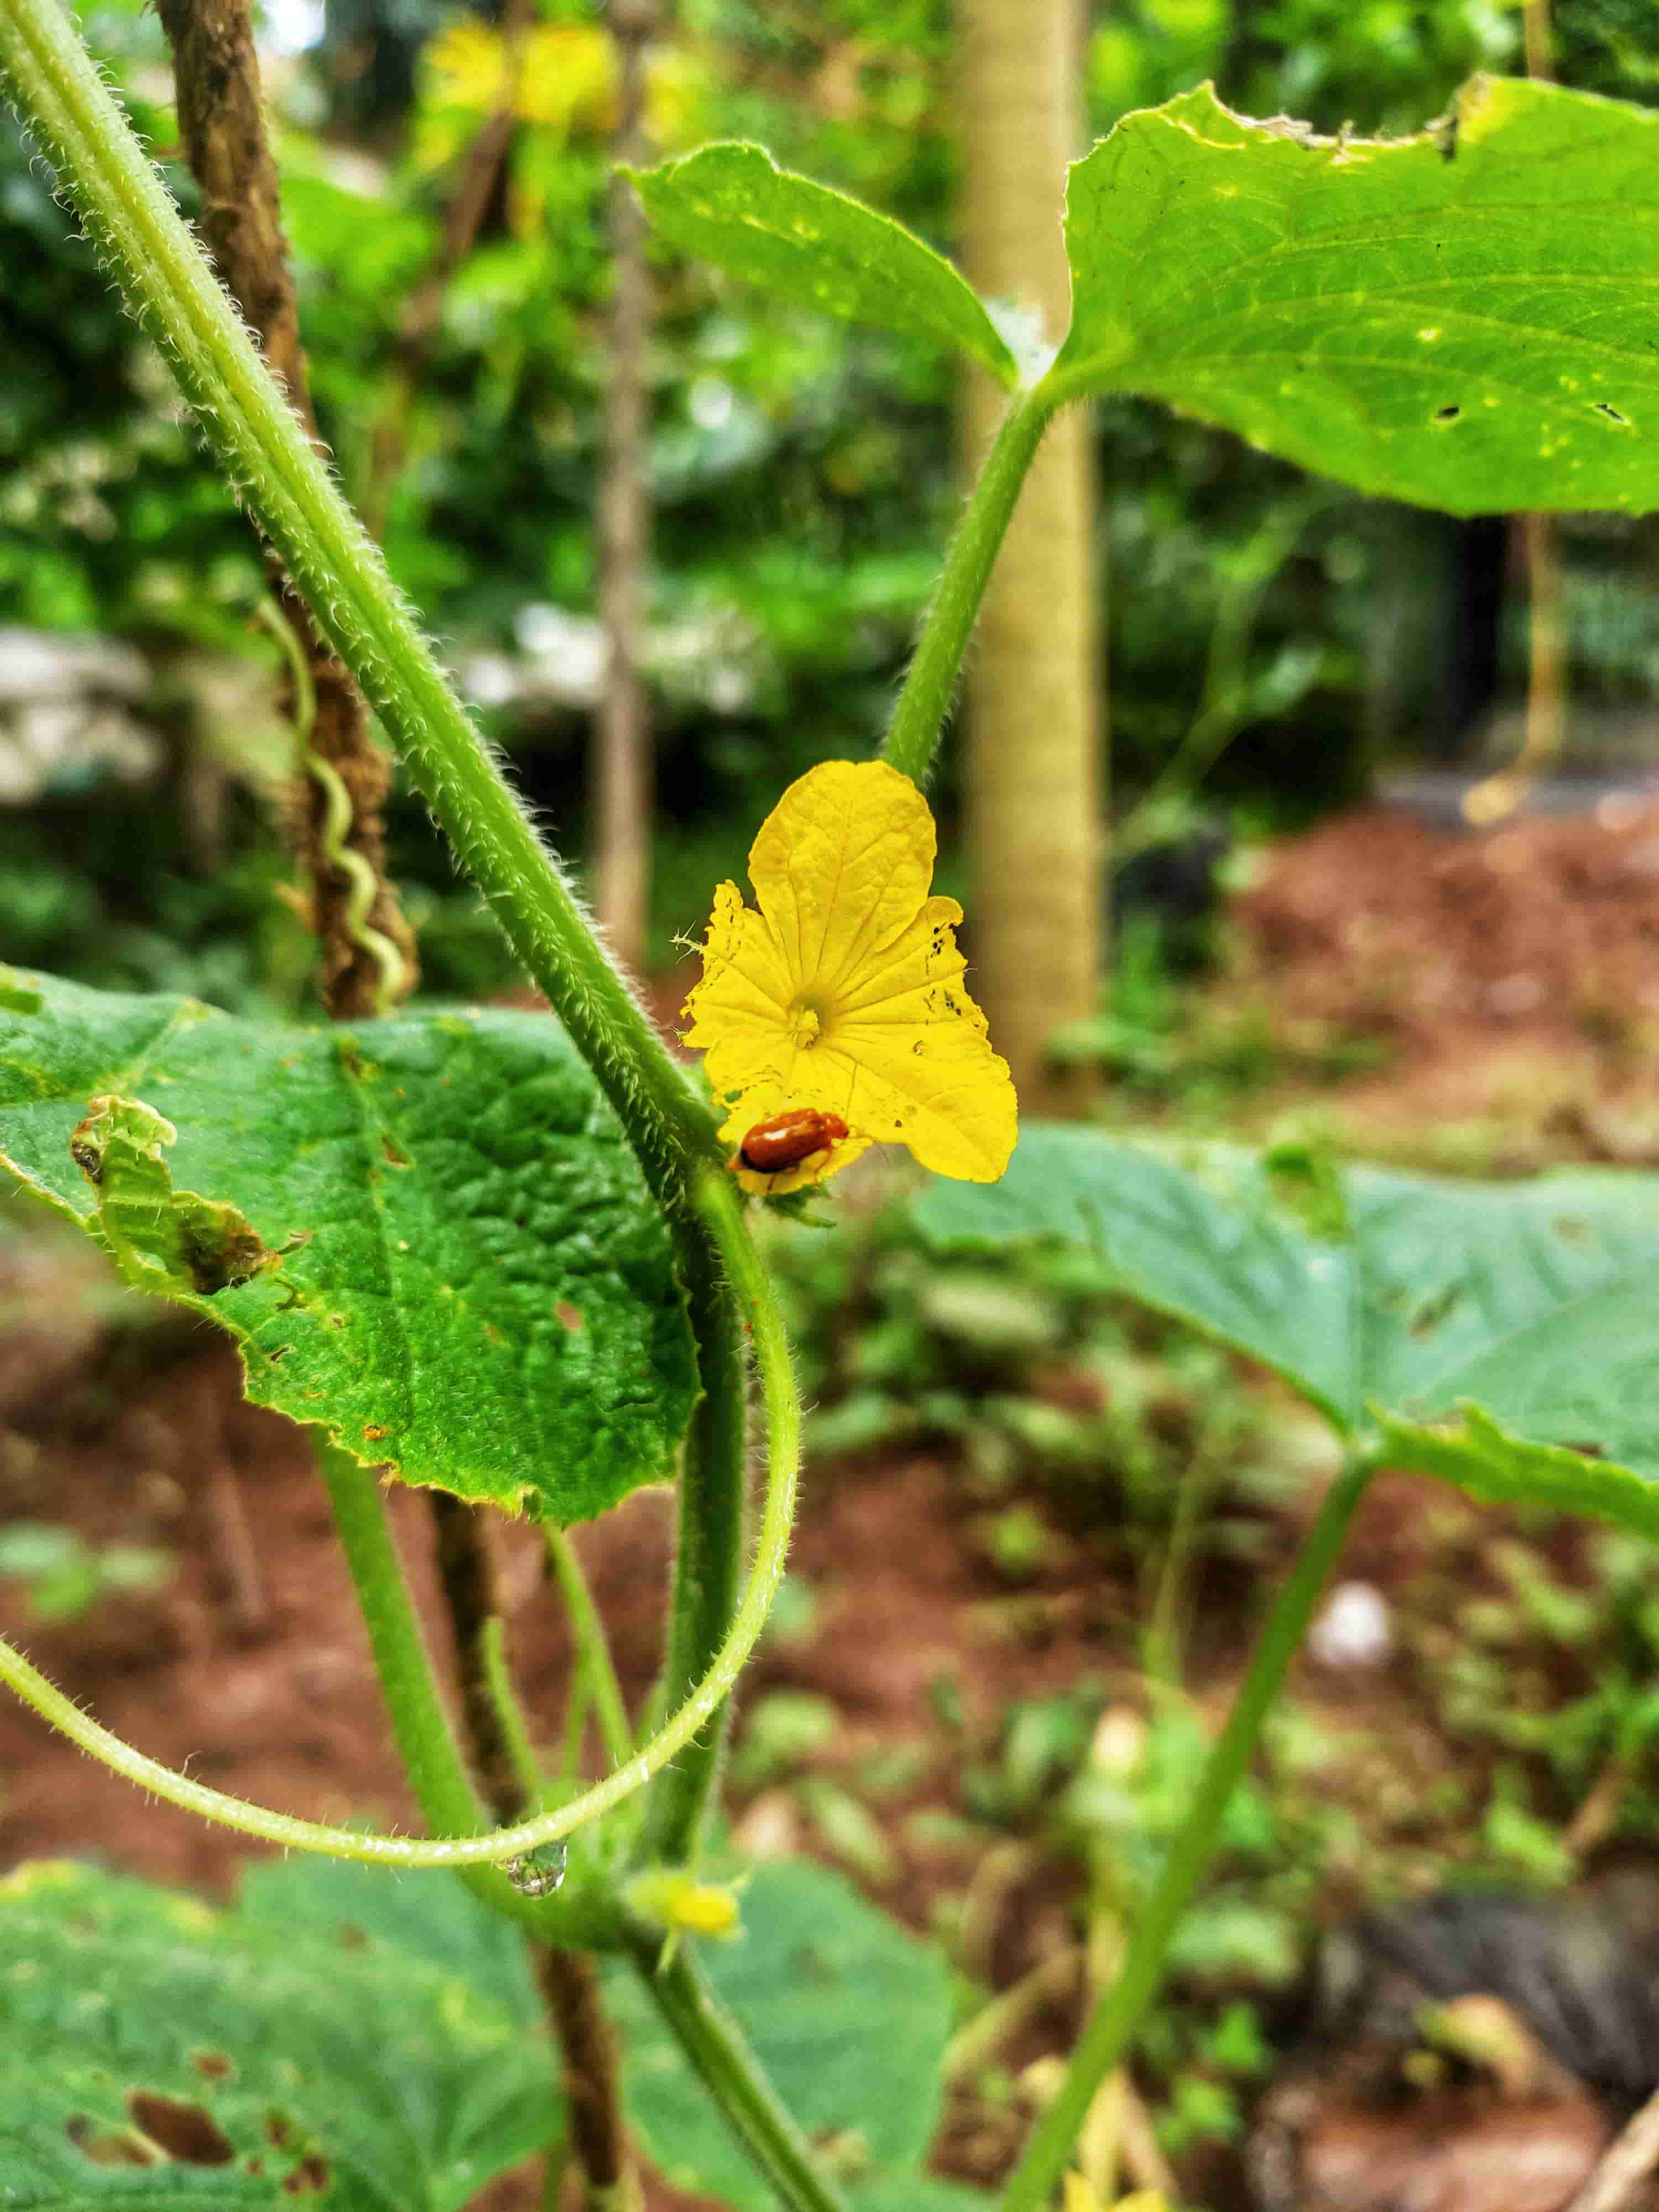 How beetle damages the Bitter gourd crop?